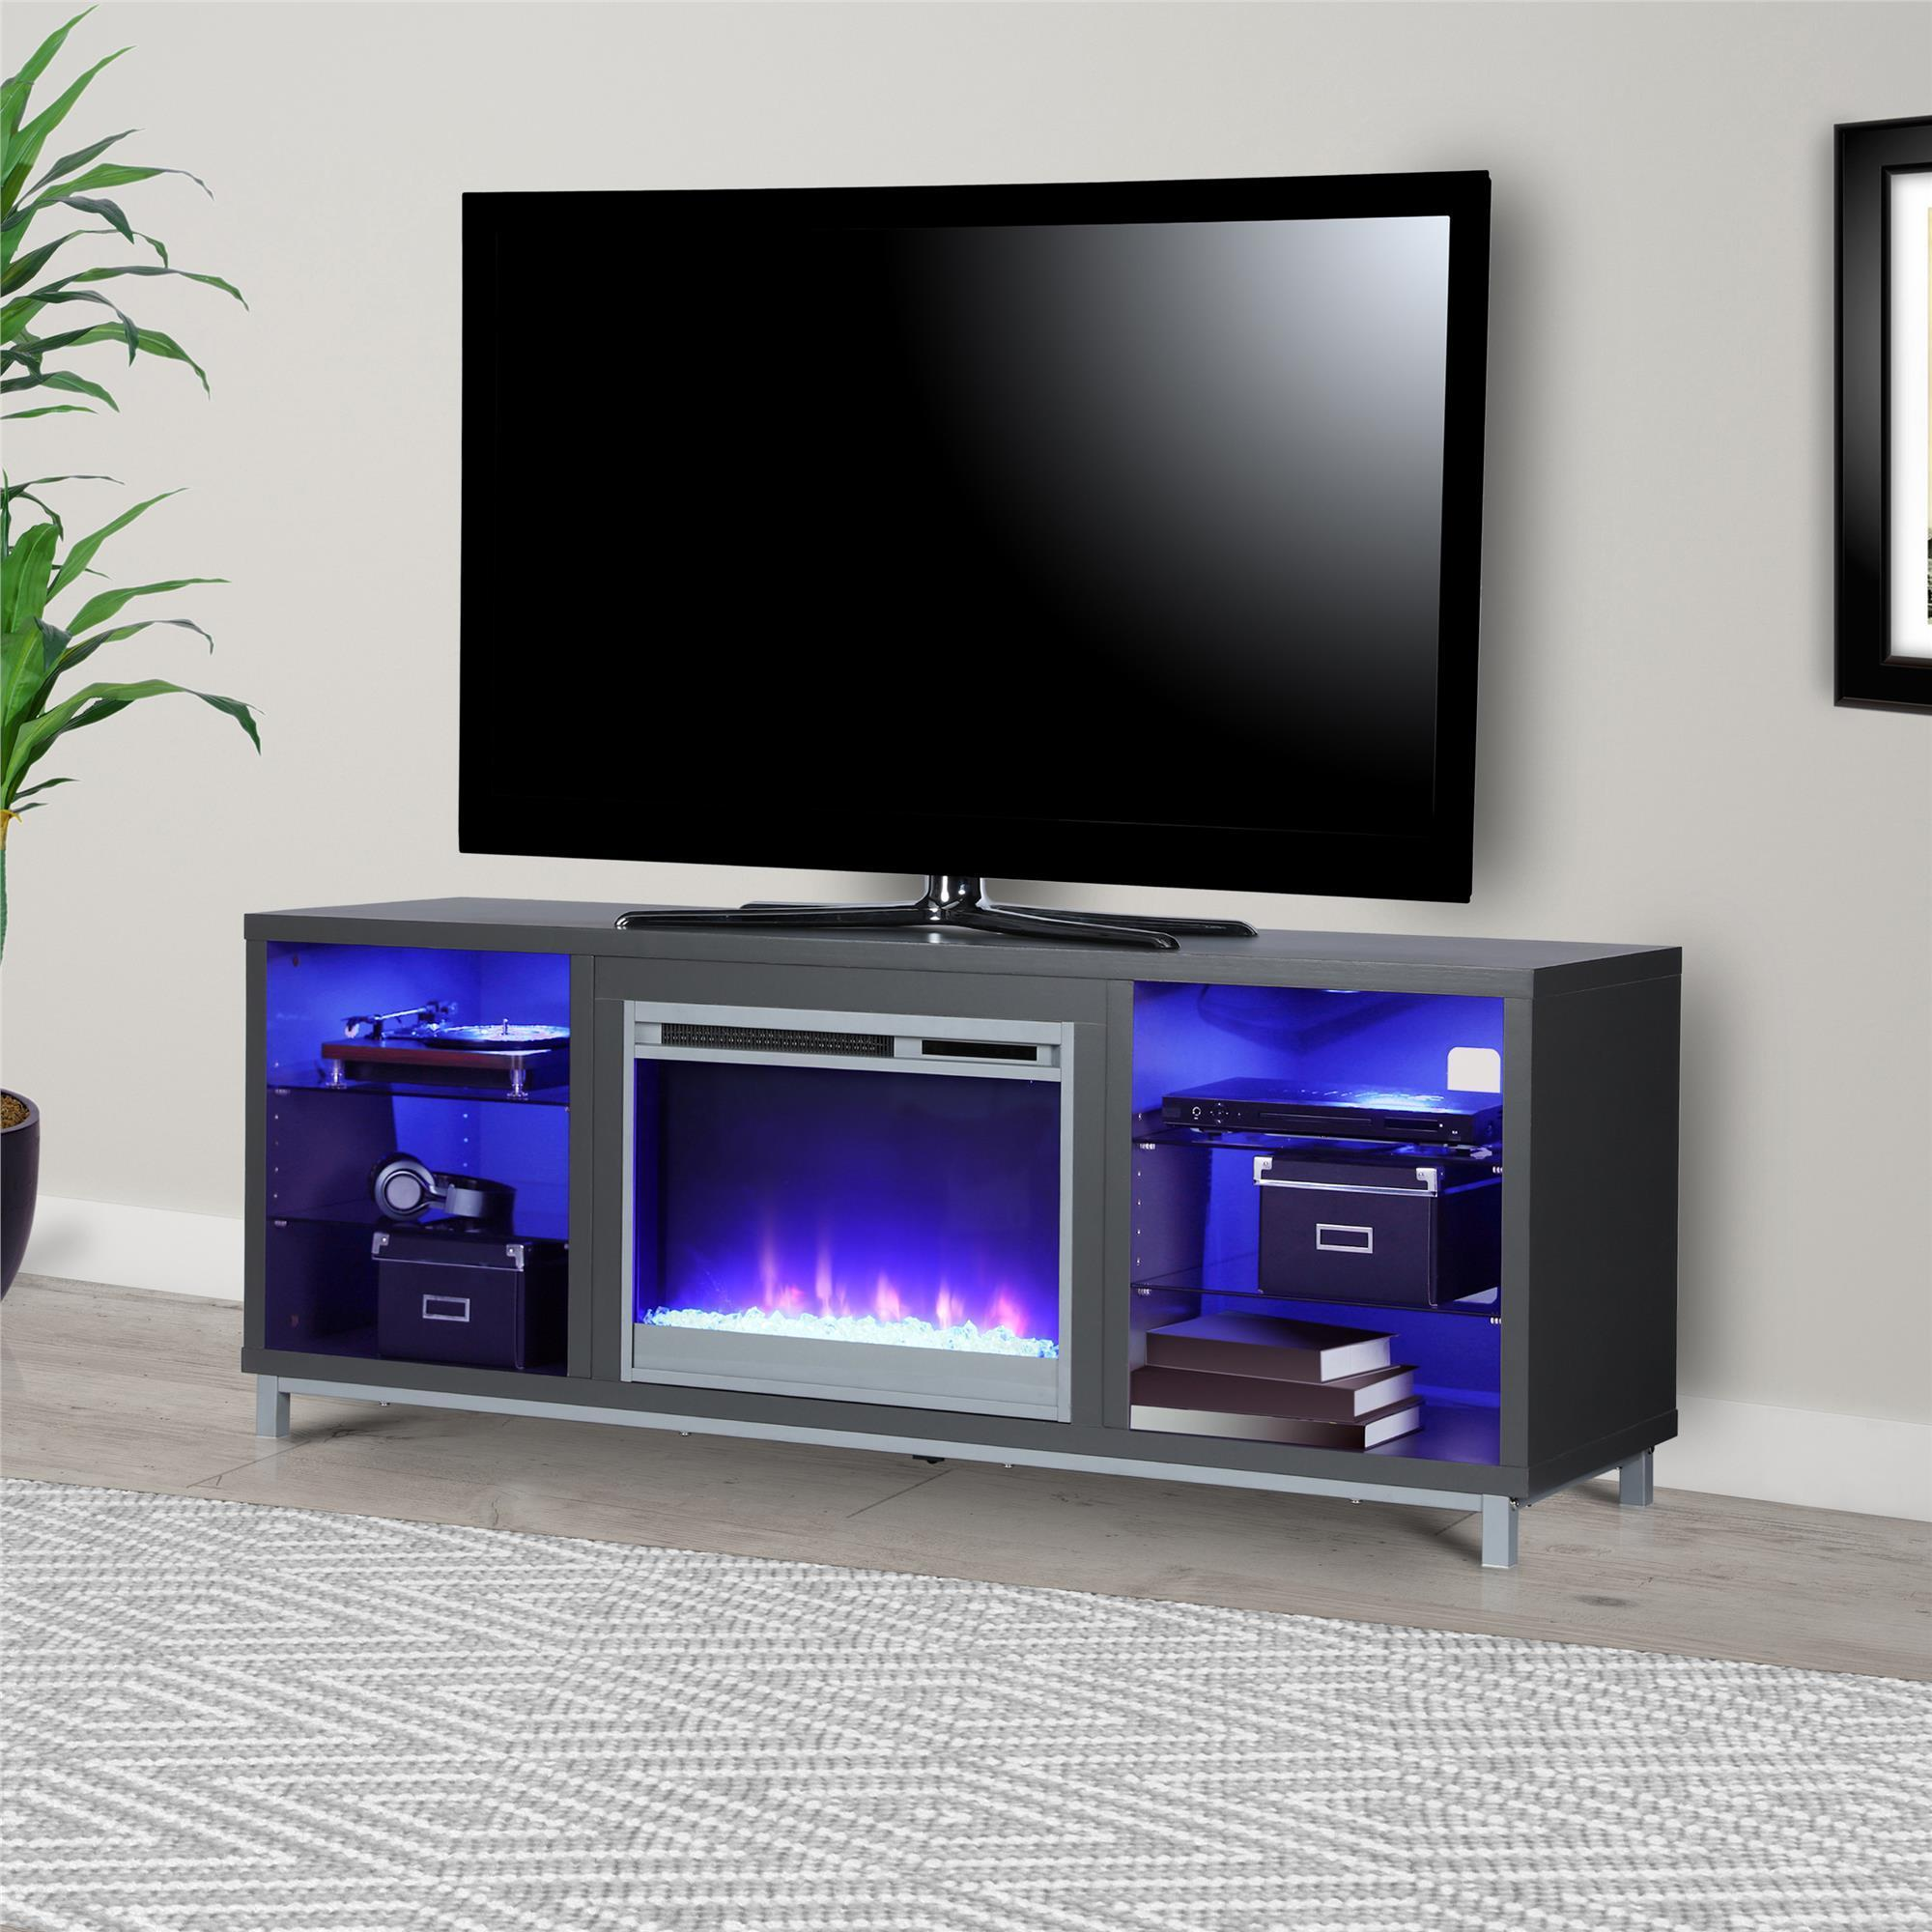 Fireplace Tv Combo Avenue Greene Westwood Fireplace Tv Stand For Tvs Up To 70 Inches Wide